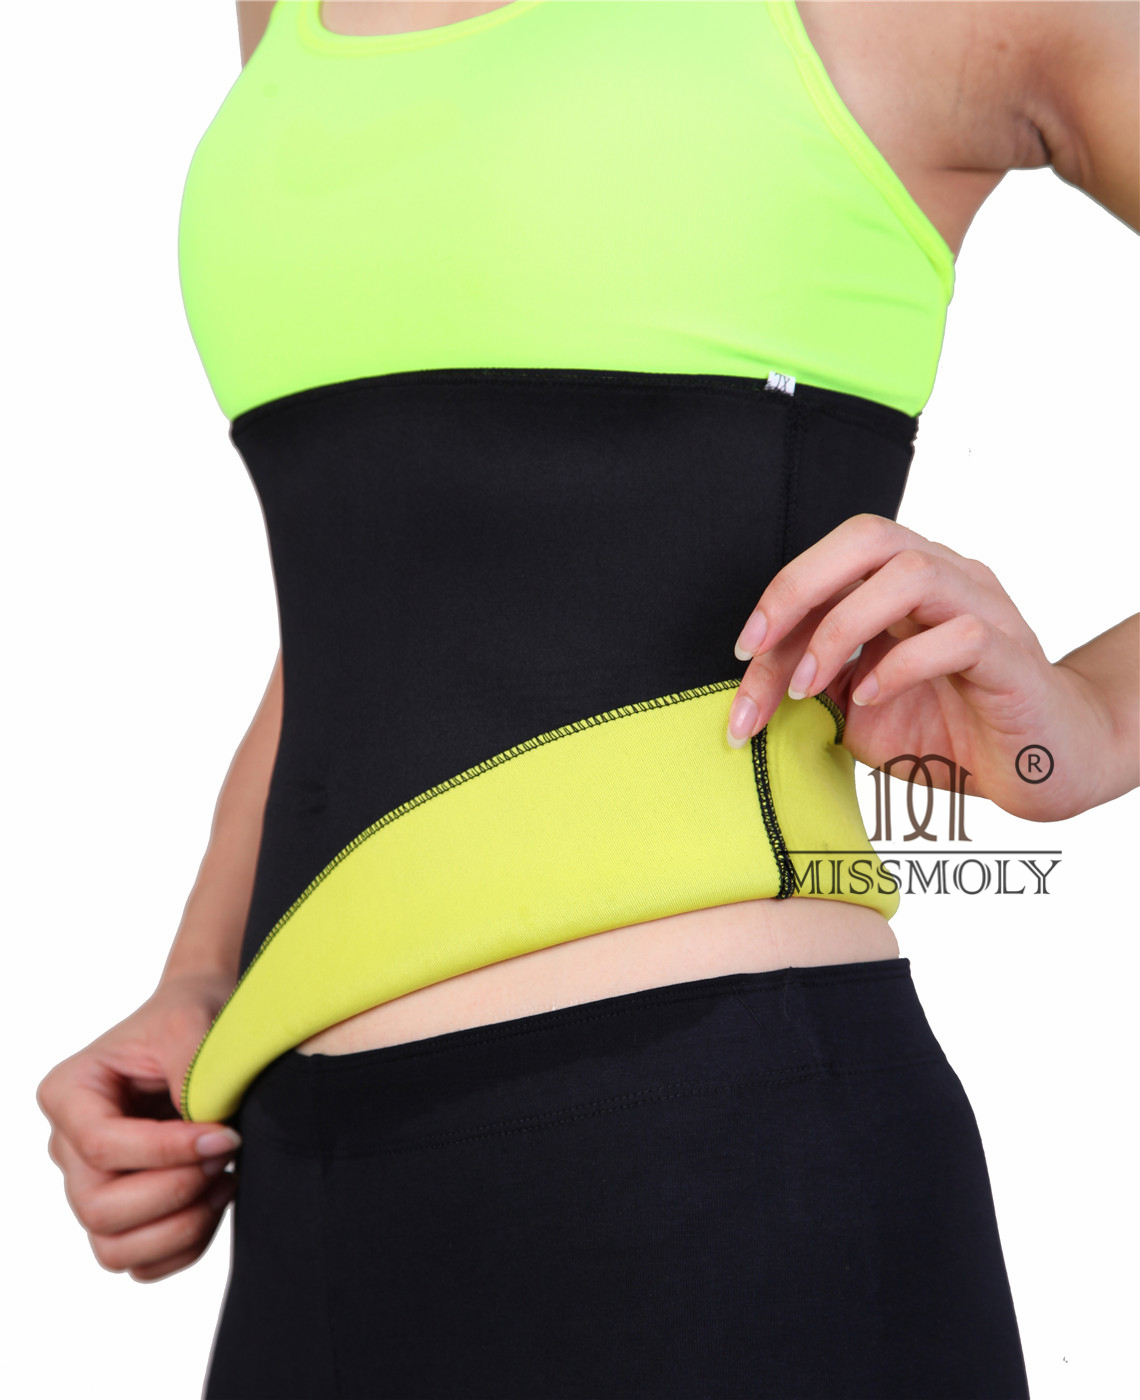 Womens Sport Fitness Hot Sweat Shaper Vest Belt Heat Maximizing Neoprene Exercise Anti Cellulite Capris